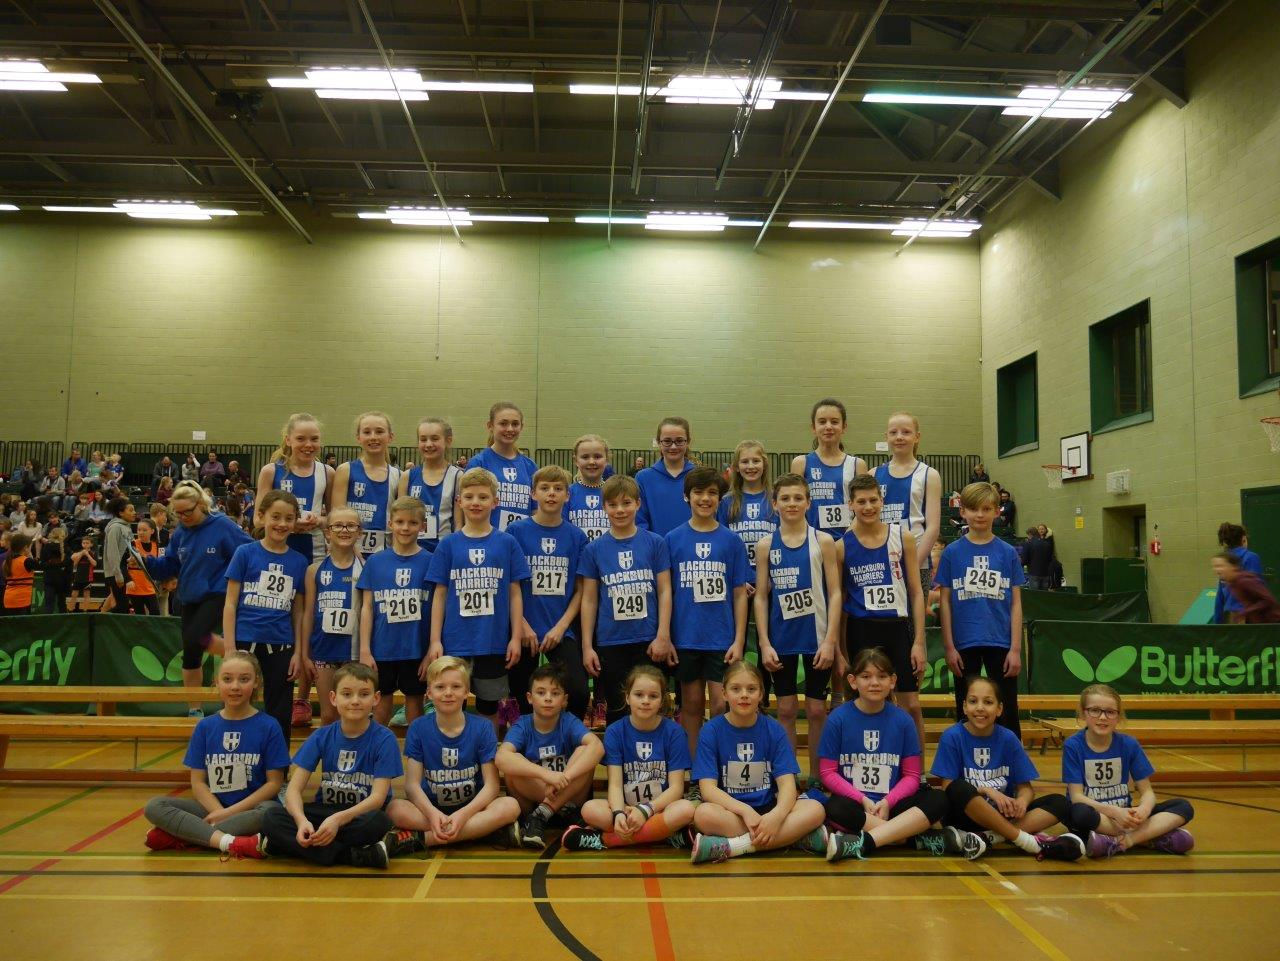 Harriers Sportshall Squad have a great season taking 3rd place in the League